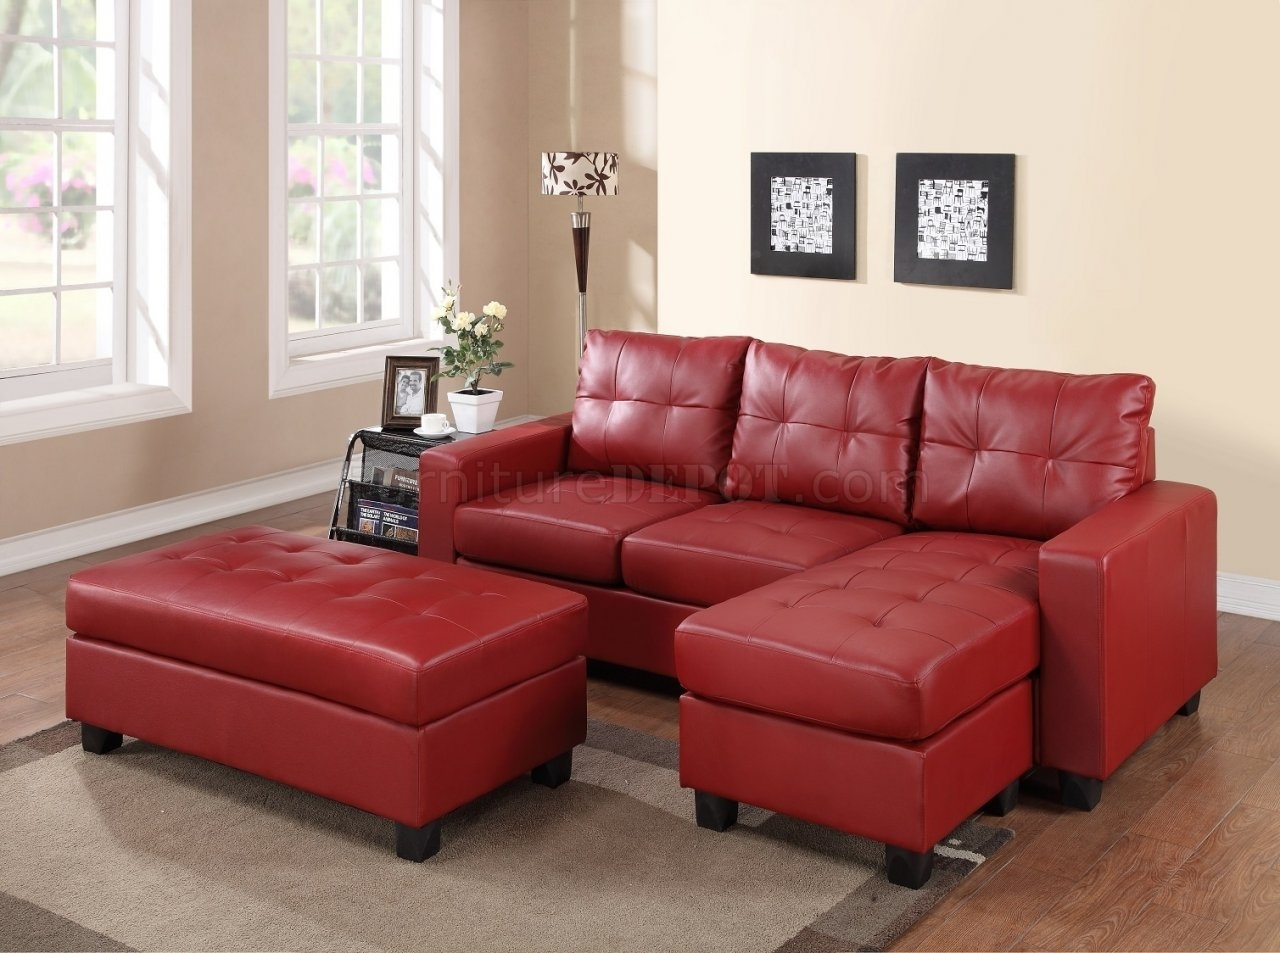 Beautiful Red Leather Sectional Sofa With Chaise Photos For Red Leather Sectionals With Chaise (View 7 of 10)